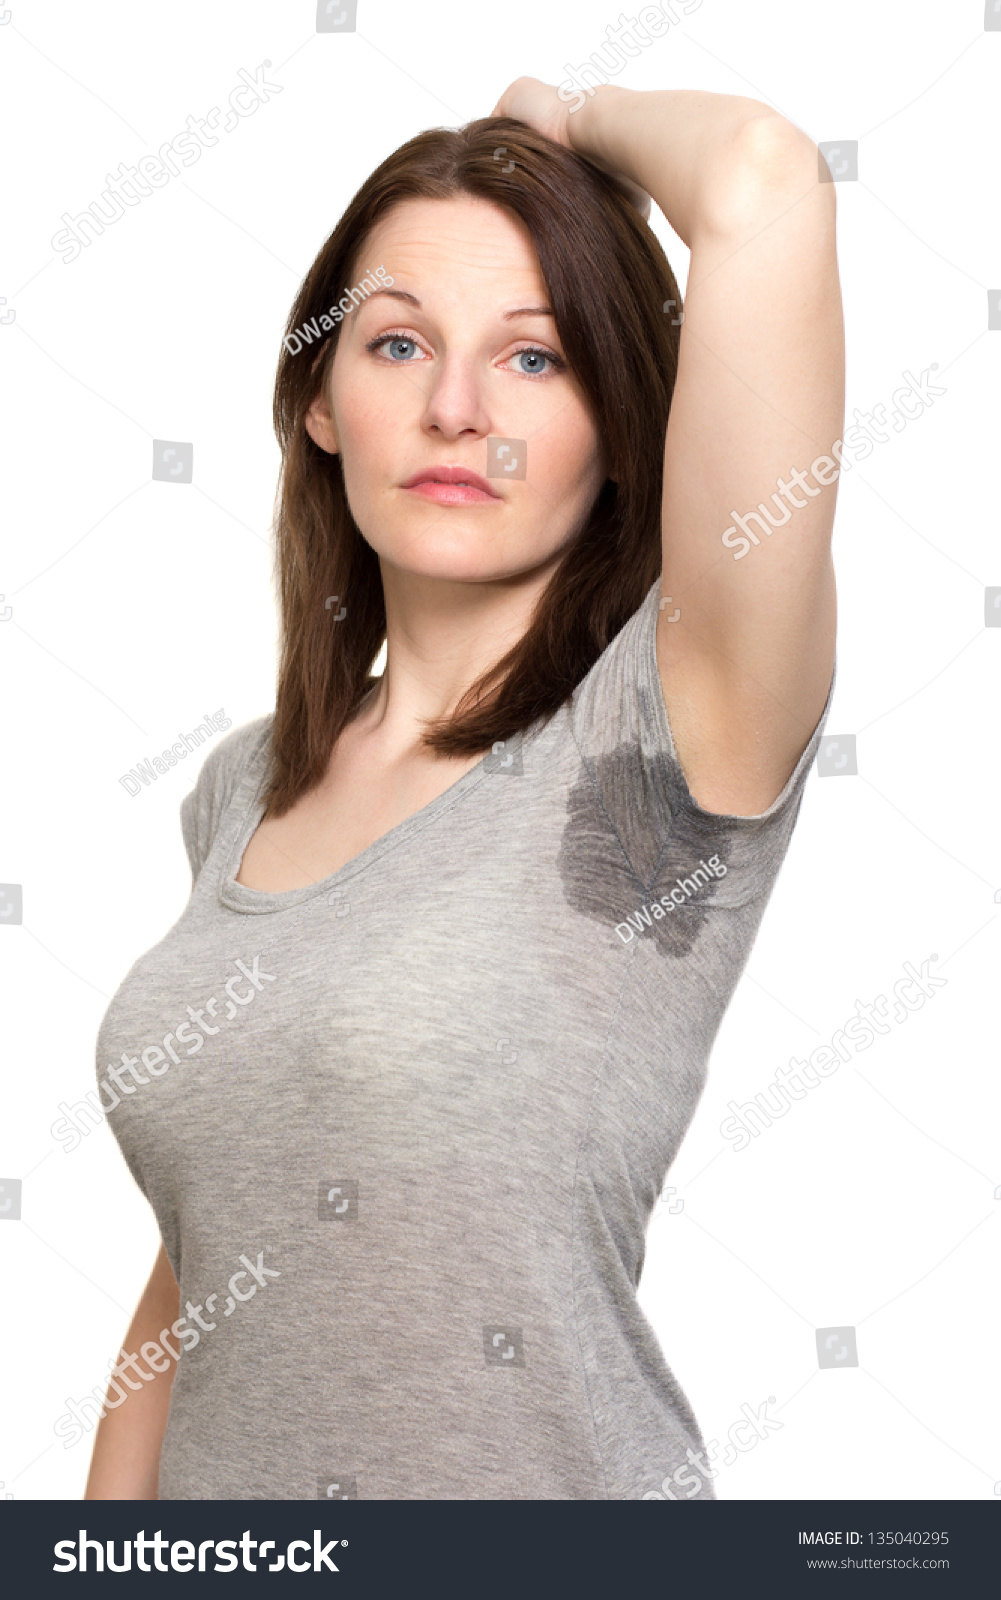 Woman Sweating Very Badly Under Armpit Stock Photo ...: https://www.shutterstock.com/pic-135040295/stock-photo-woman-sweating-very-badly-under-armpit.html